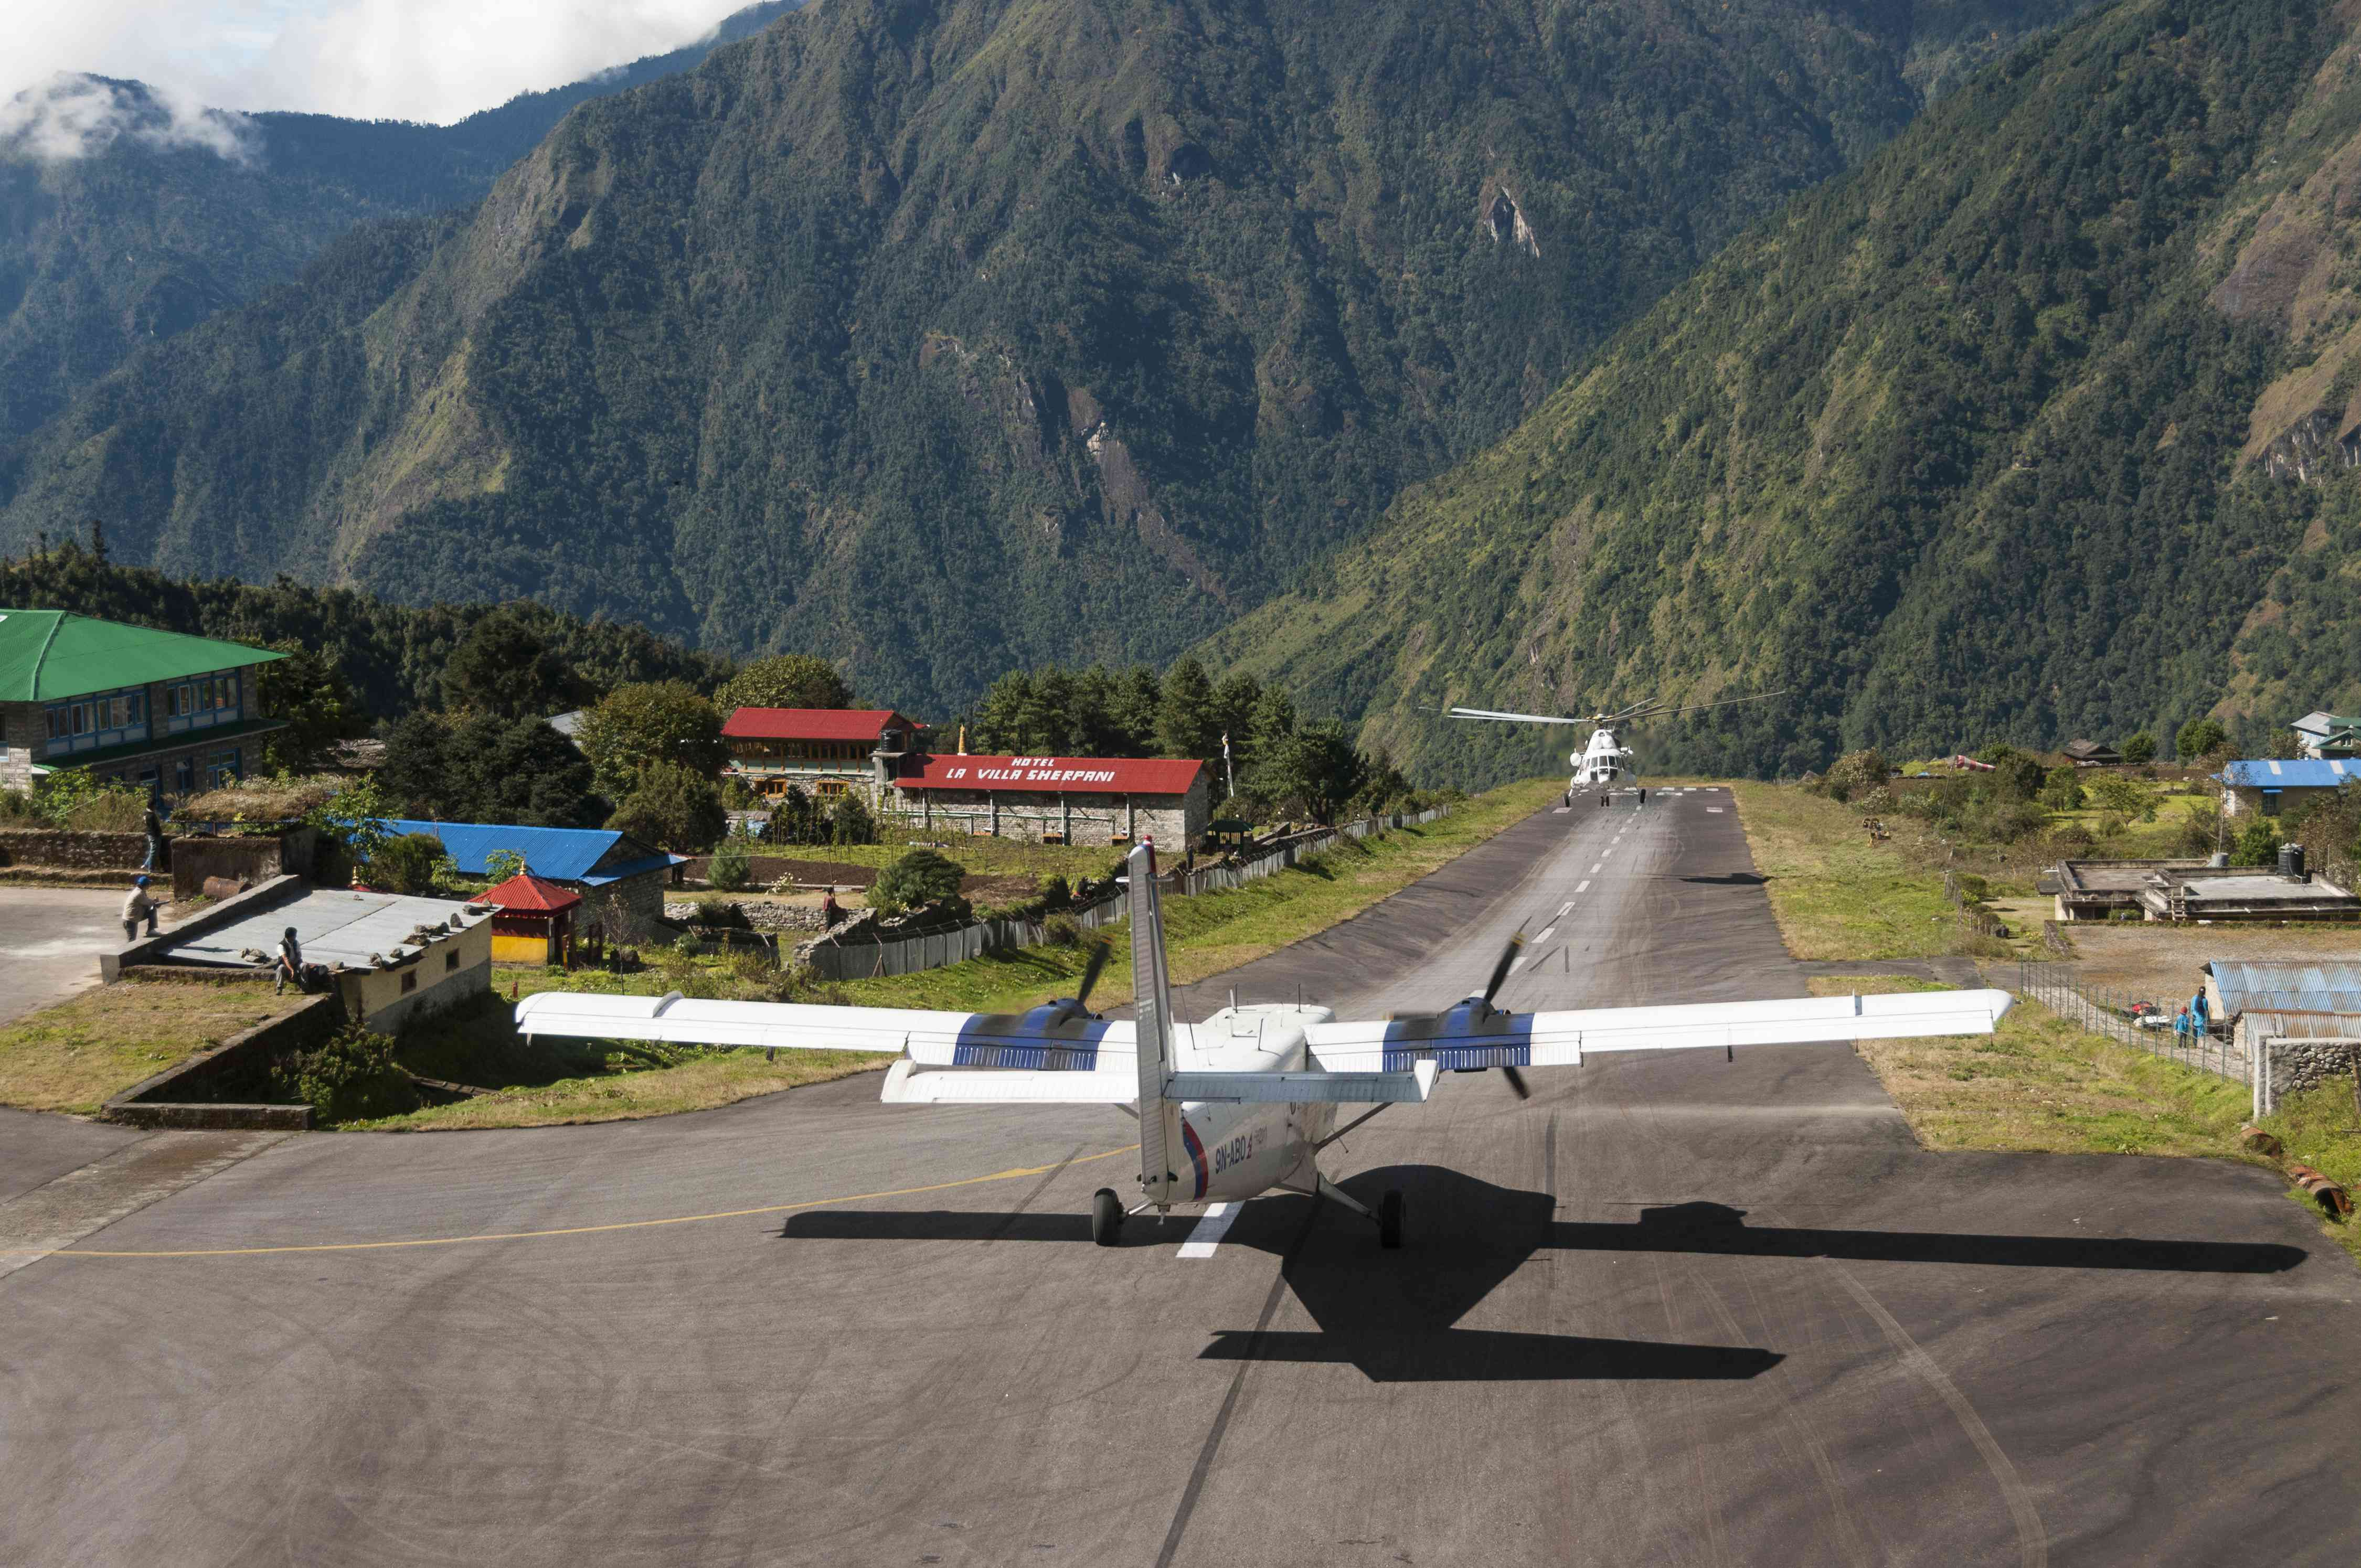 Plan taking off from Lukla Airport in the Himalayas